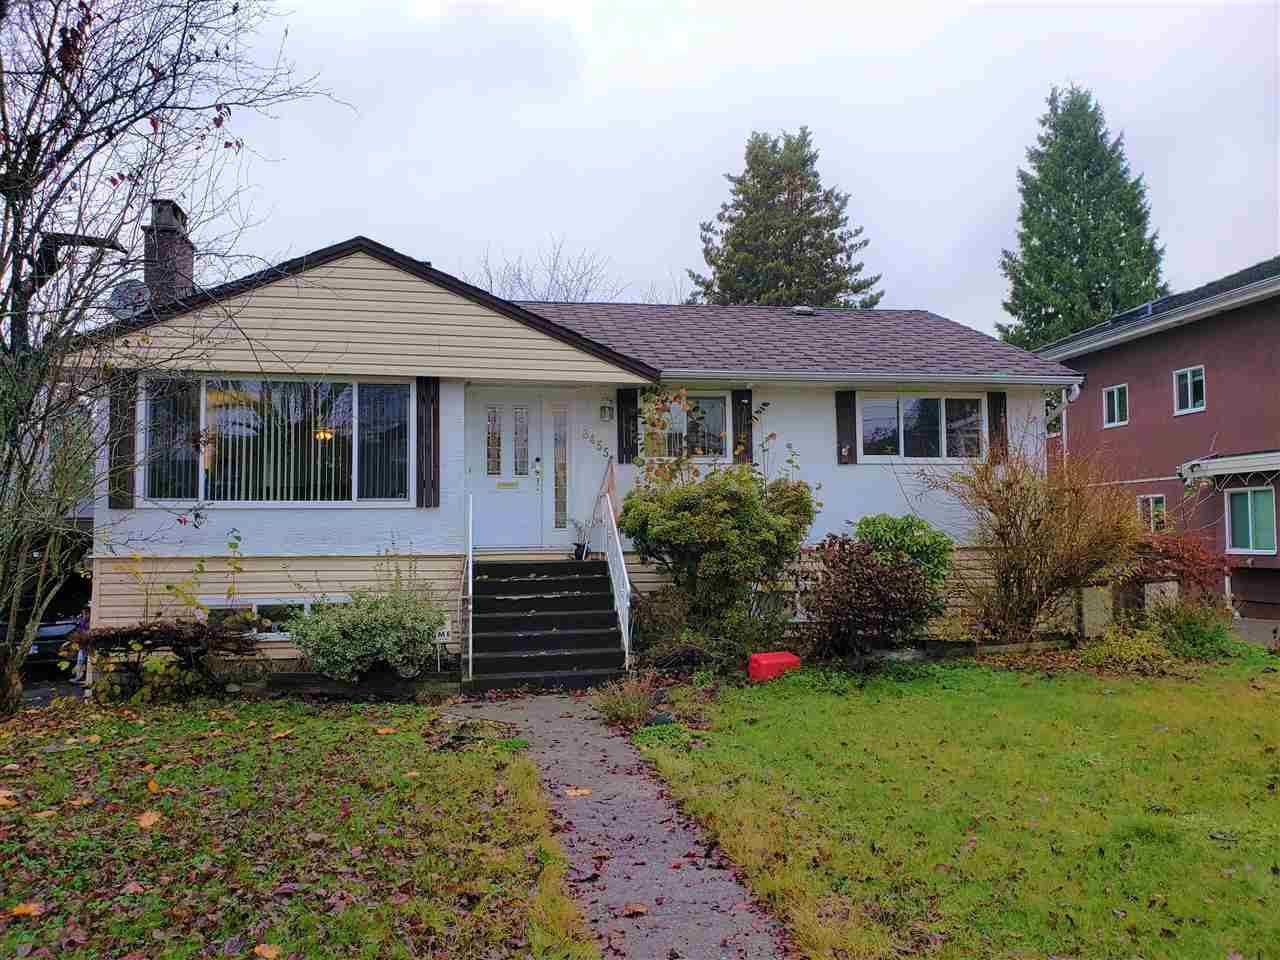 Main Photo: 8455 14TH Avenue in Burnaby: East Burnaby House for sale (Burnaby East)  : MLS®# R2417792